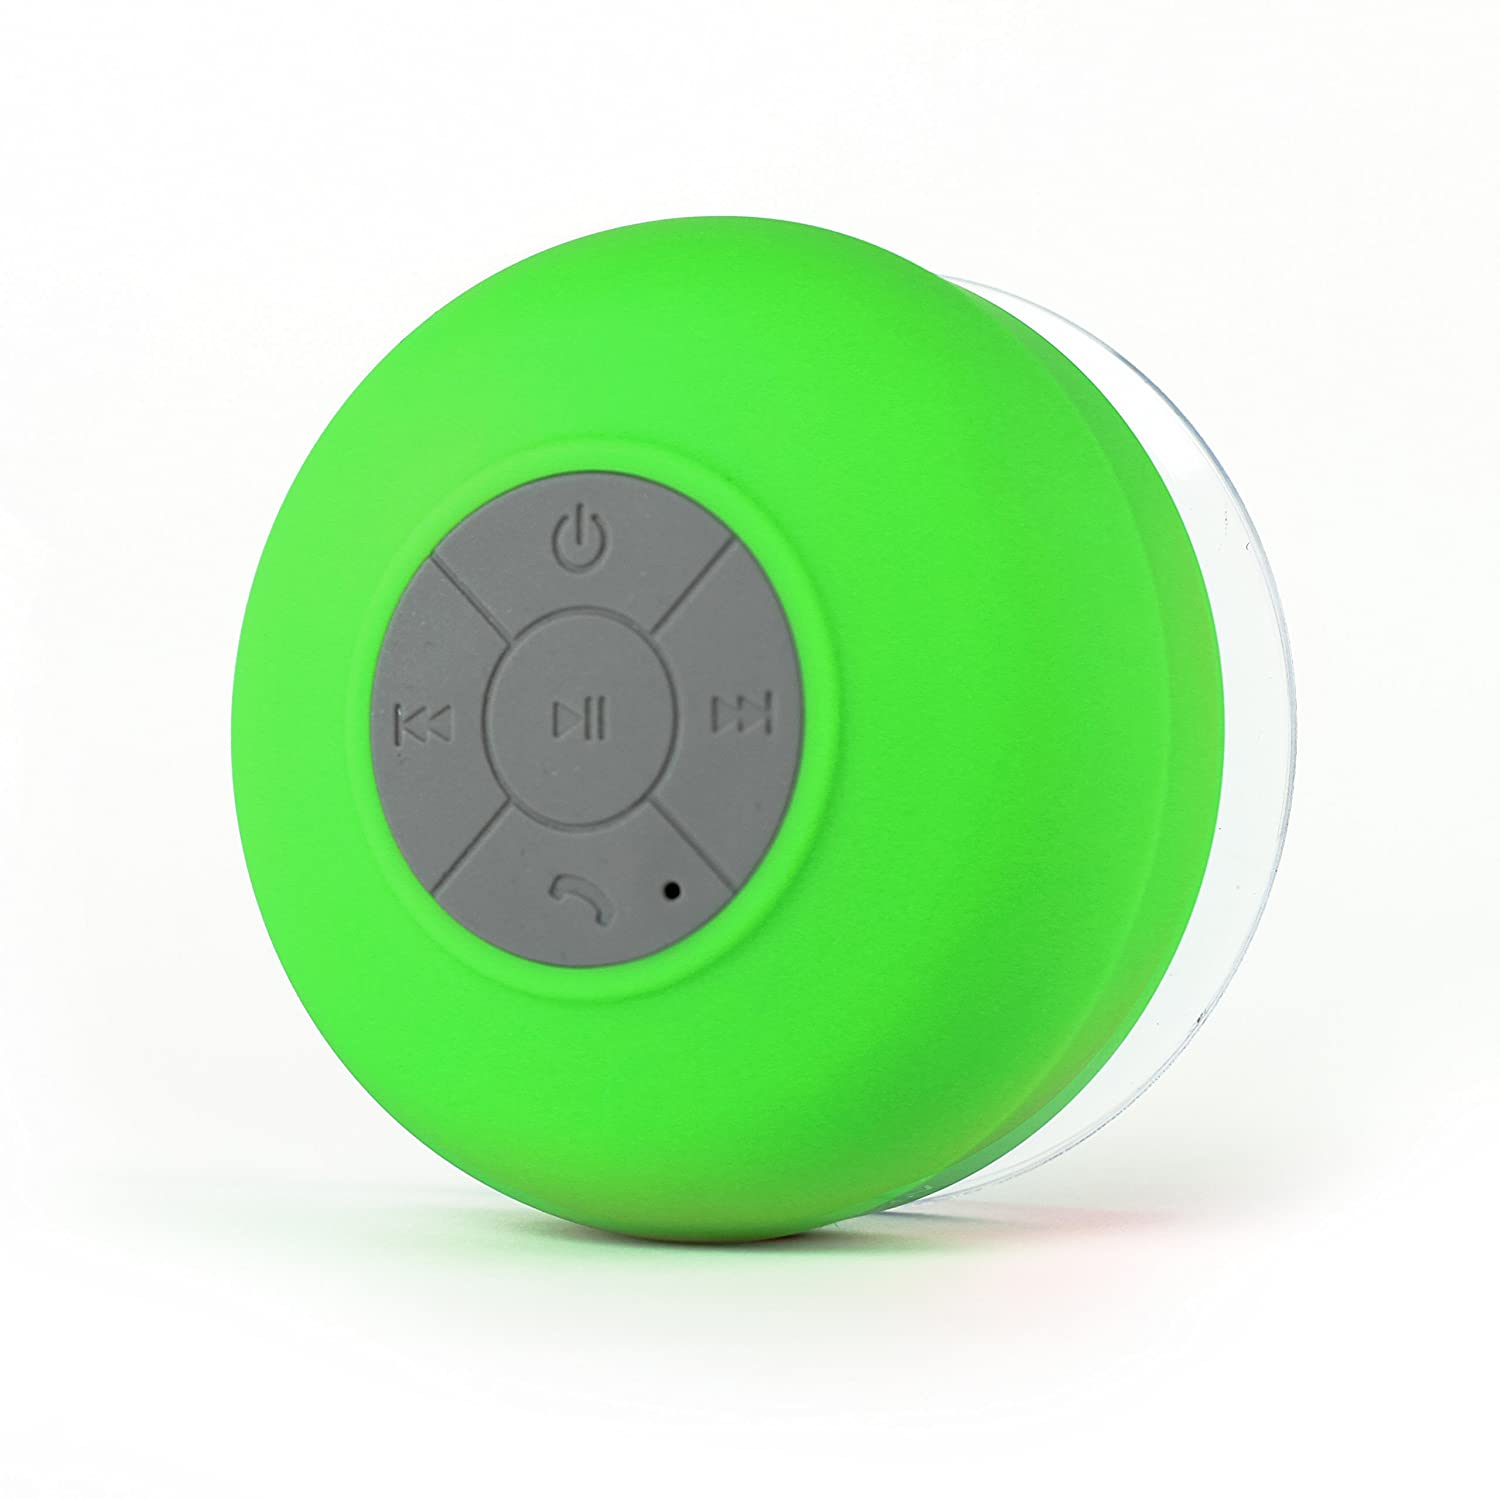 Portable Wireless Hands Free FRESHeTECH Waterproof Bluetooth Shower Speaker Splash Tunes Shower Speaker with Built-in Mic and Suction Cup STPGRY-1 Water Resistant